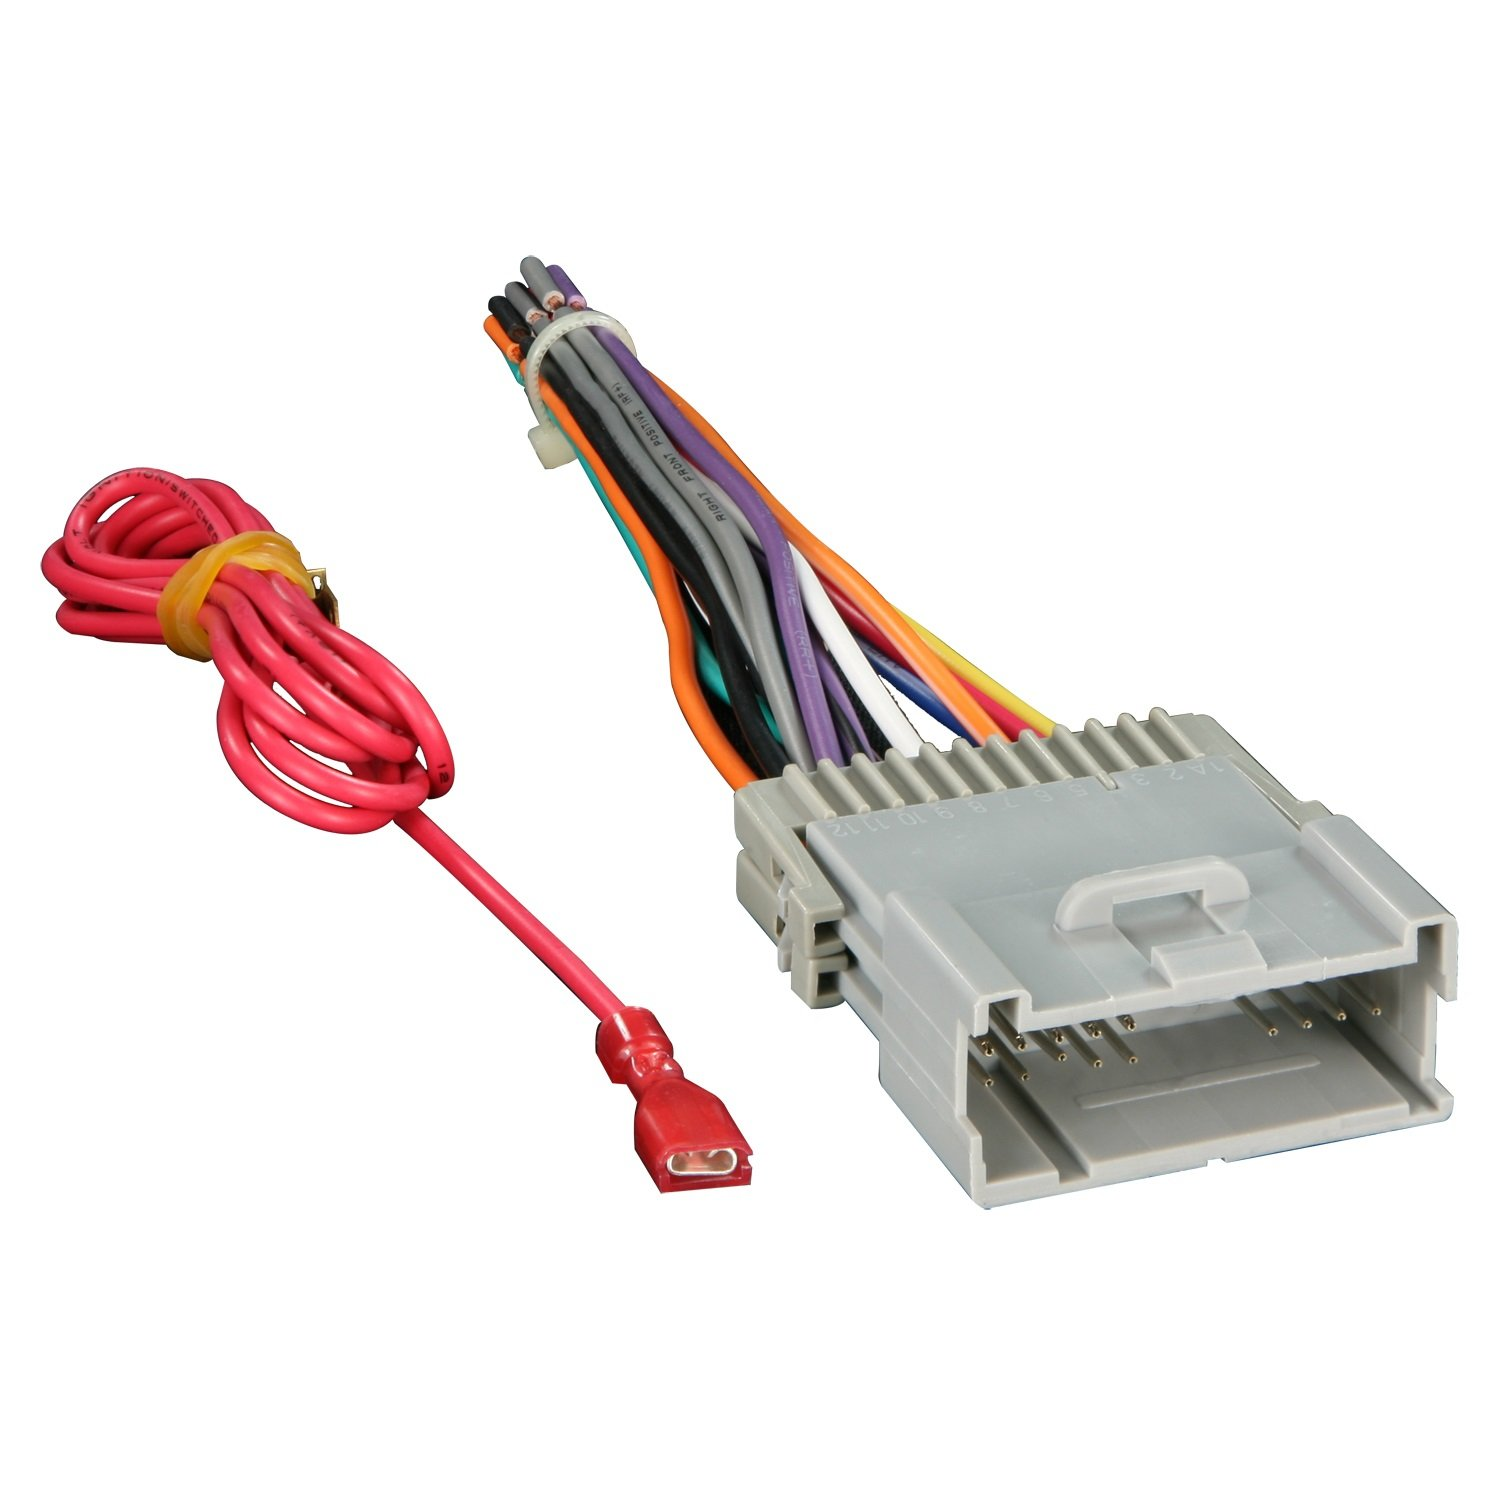 61eewxp9orL._SL1500_ amazon com metra 70 2003 radio wiring harness for gm 98 08  at panicattacktreatment.co